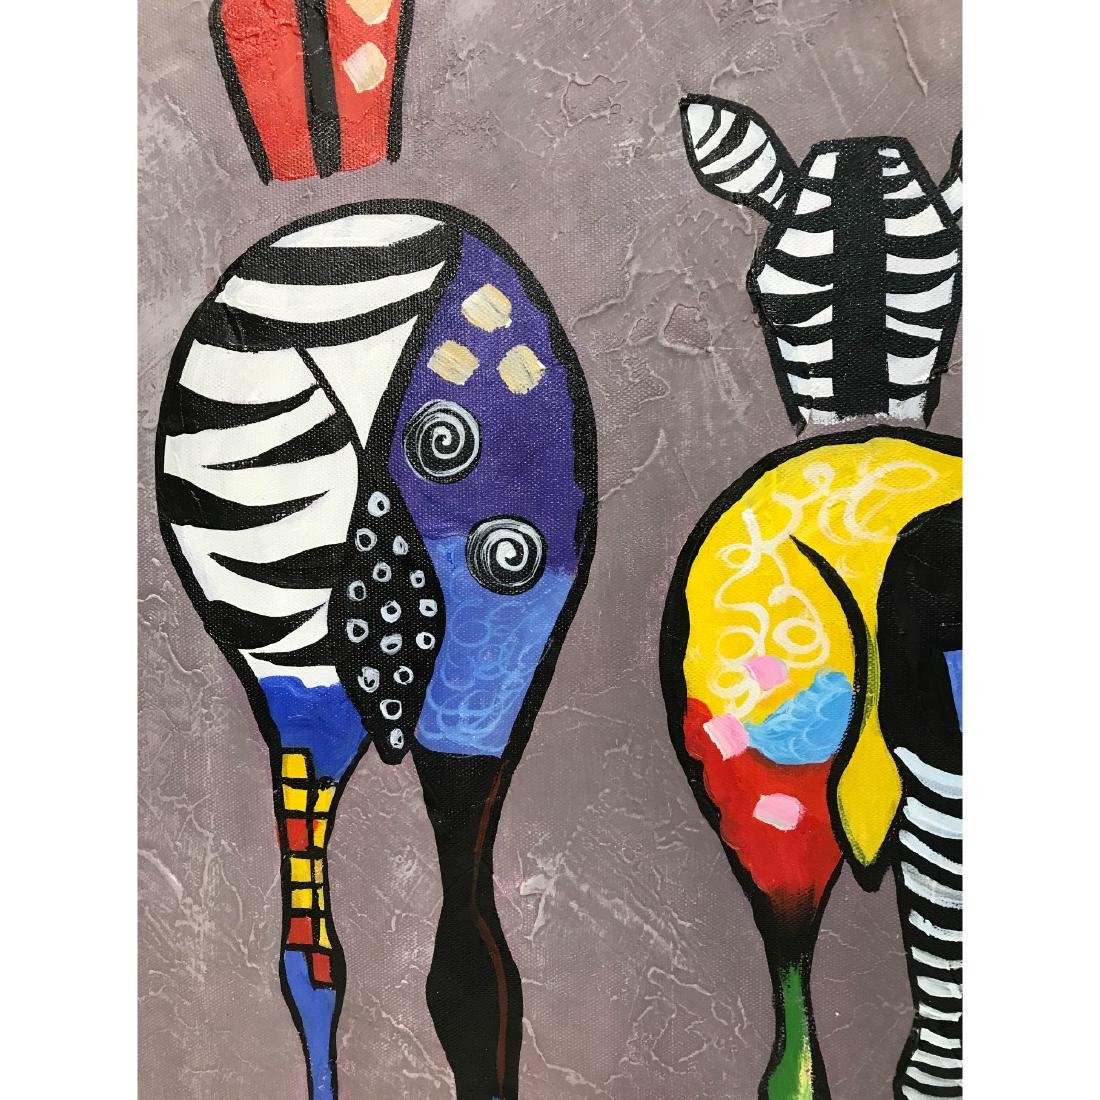 Oil on Canvas of Group of Zebras - 10